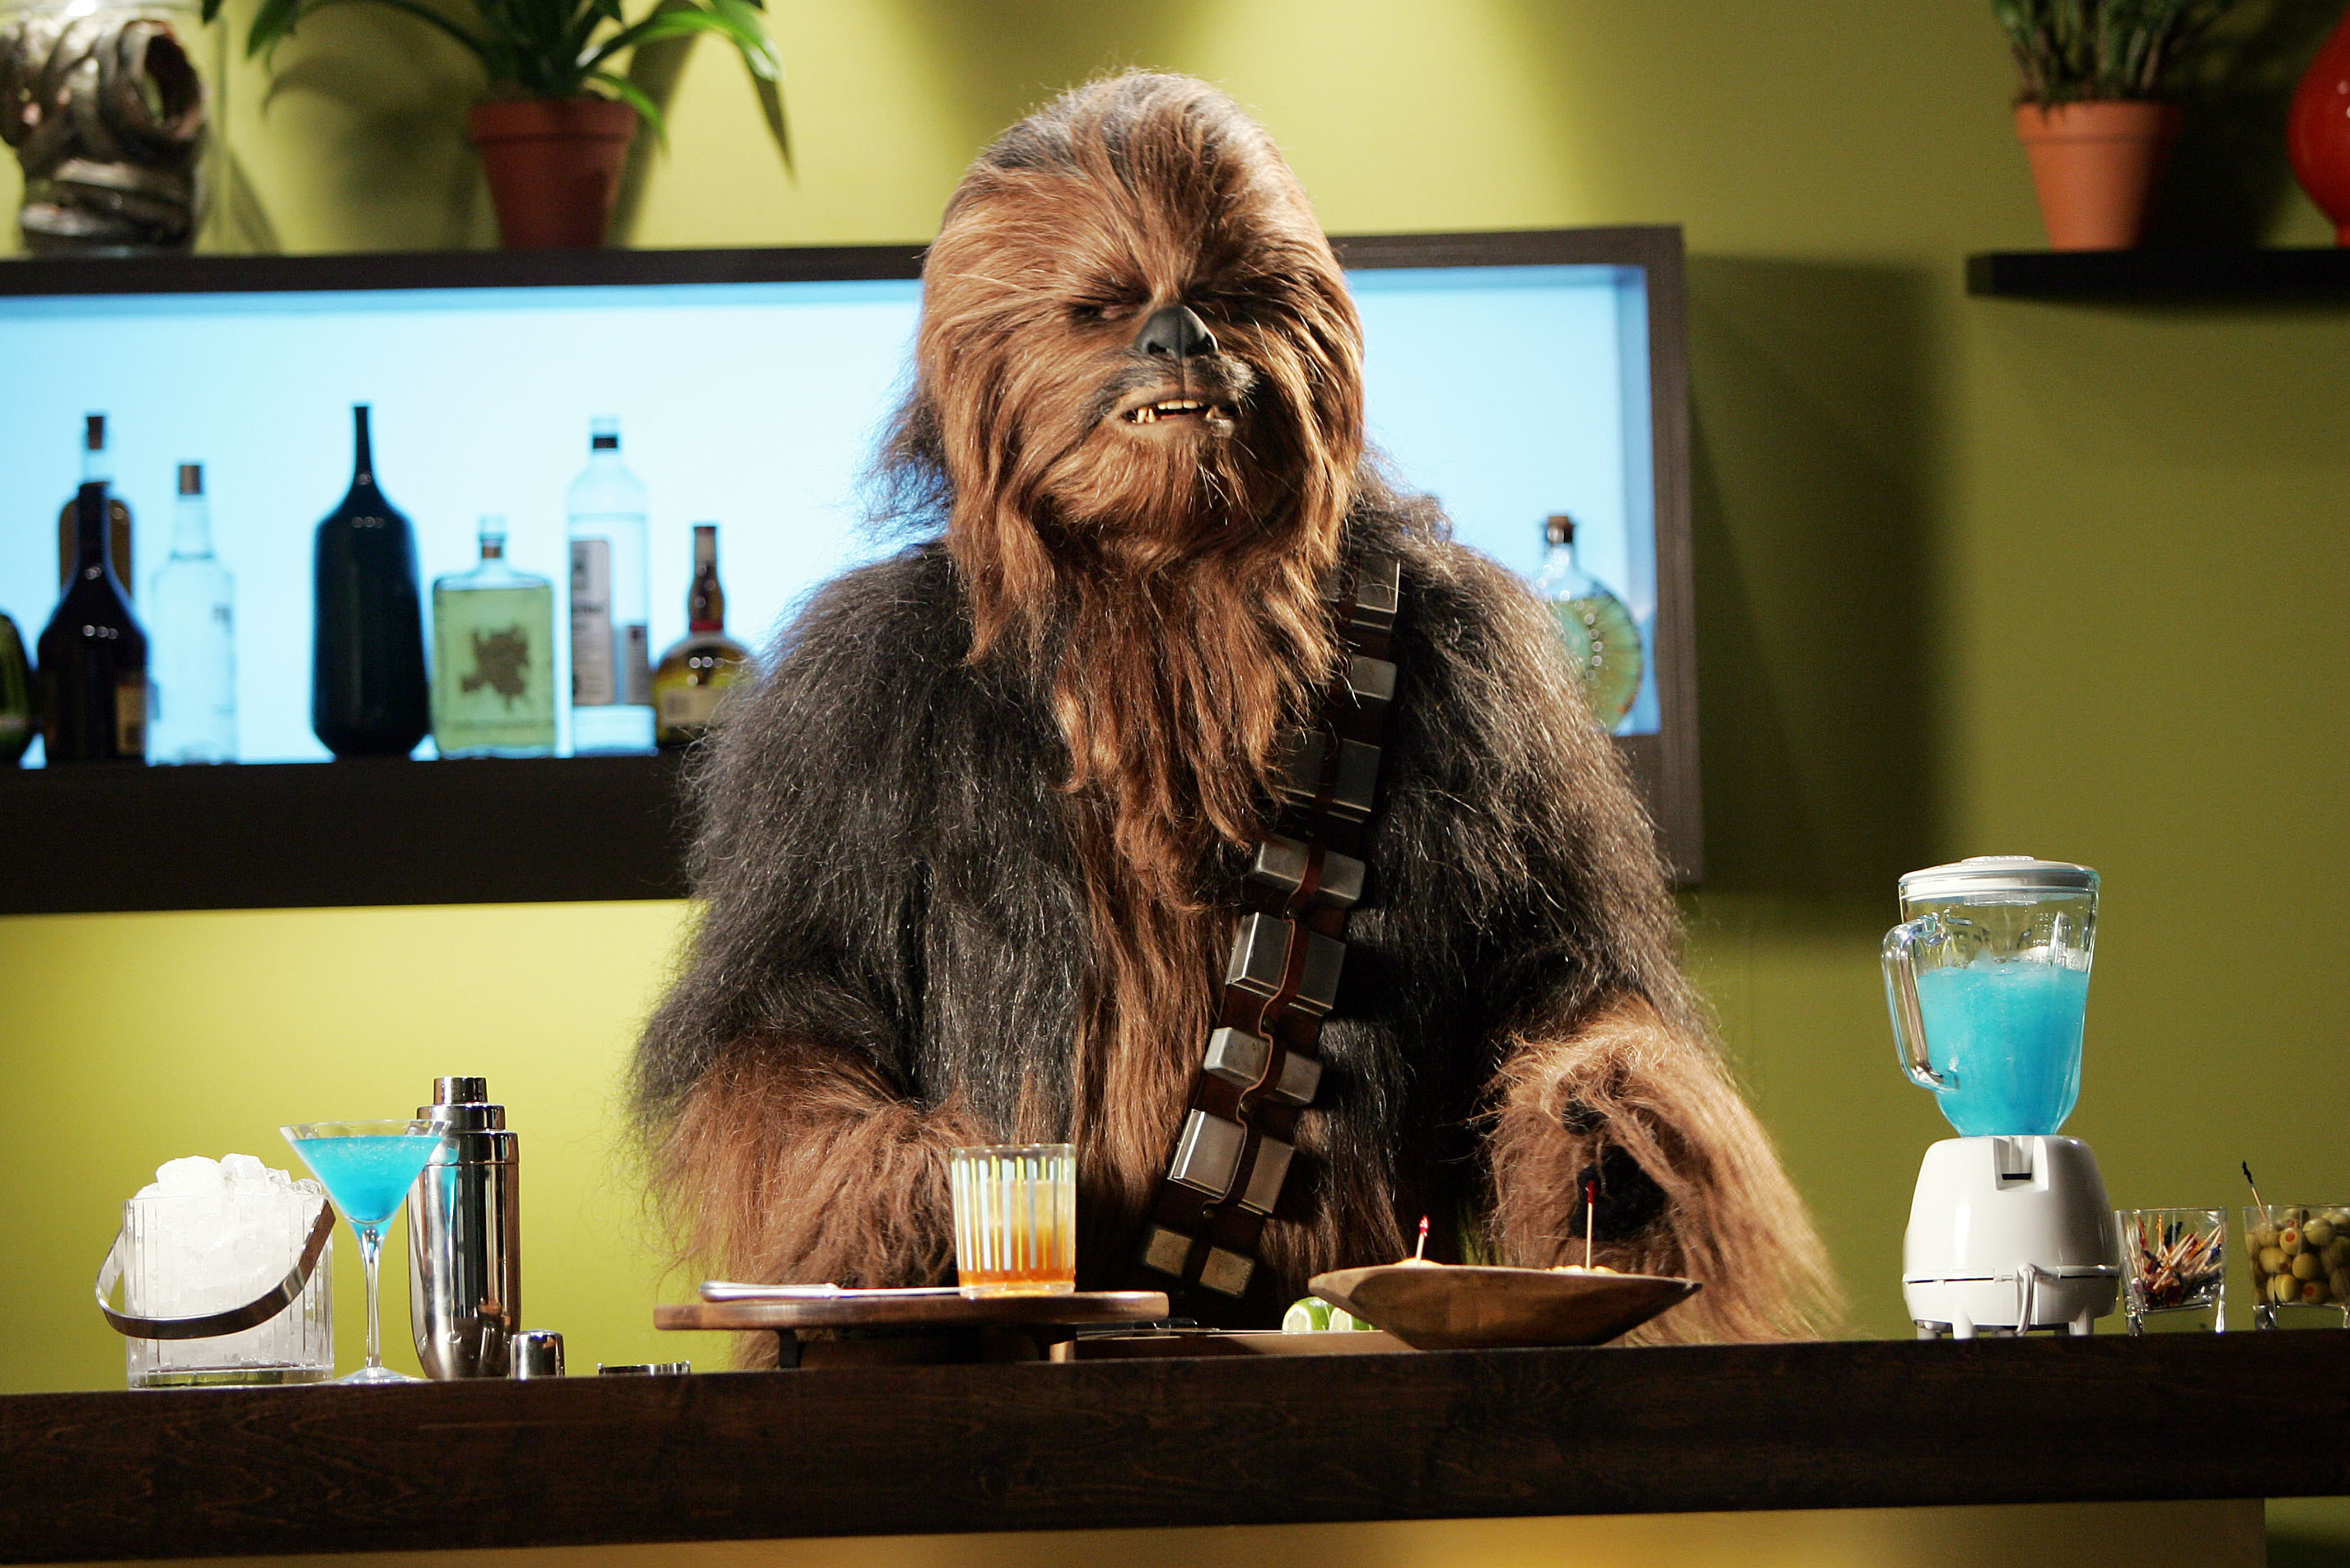 Chewbacca, the furriest of the Star Wars rebels that Freeborn helped create.